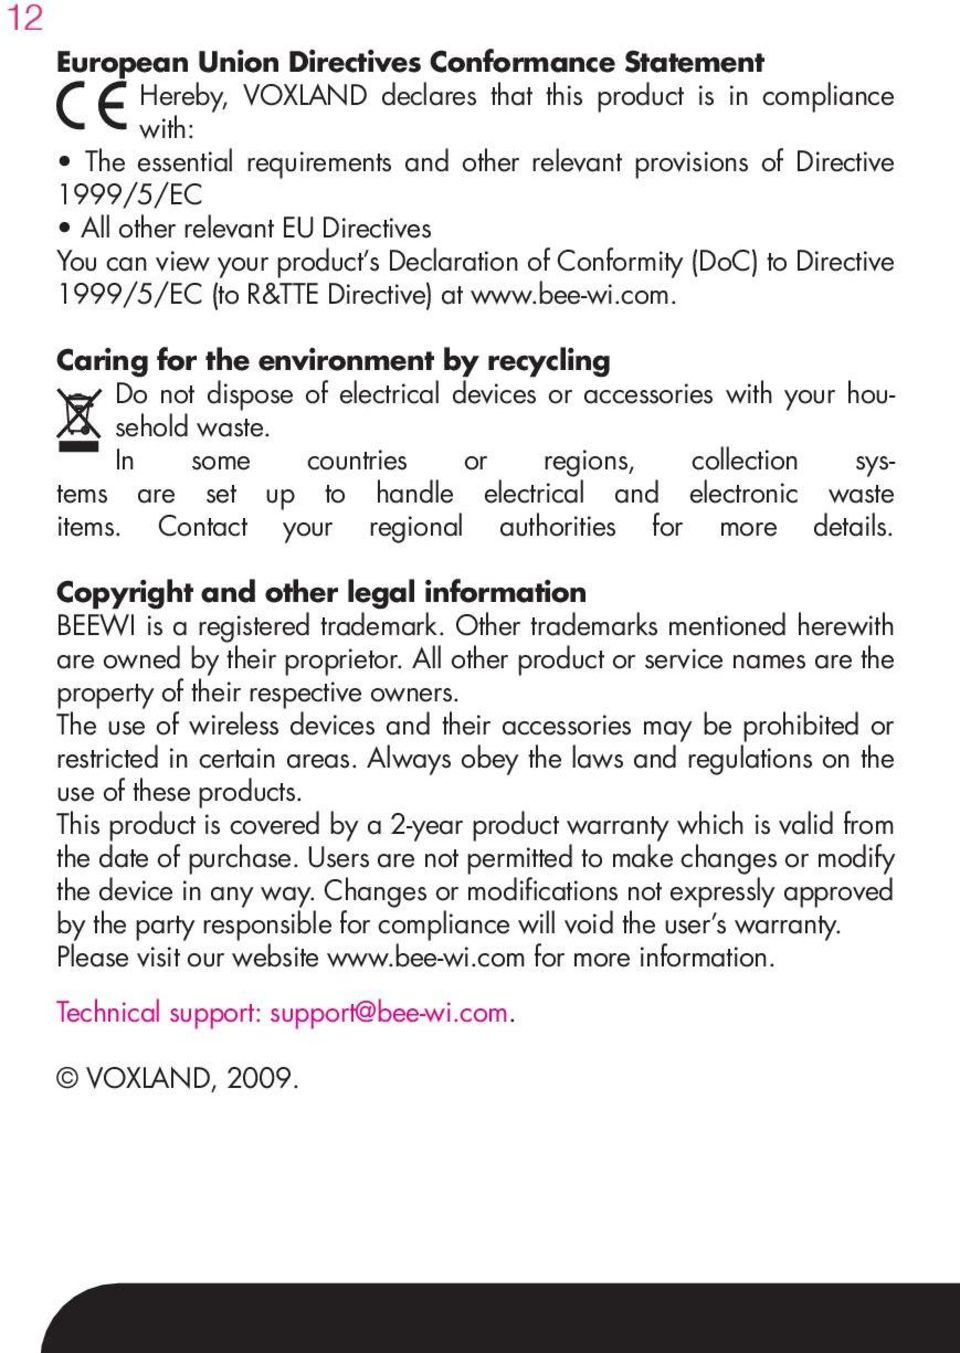 Caring for the environment by recycling Do not dispose of electrical devices or accessories with your household waste.